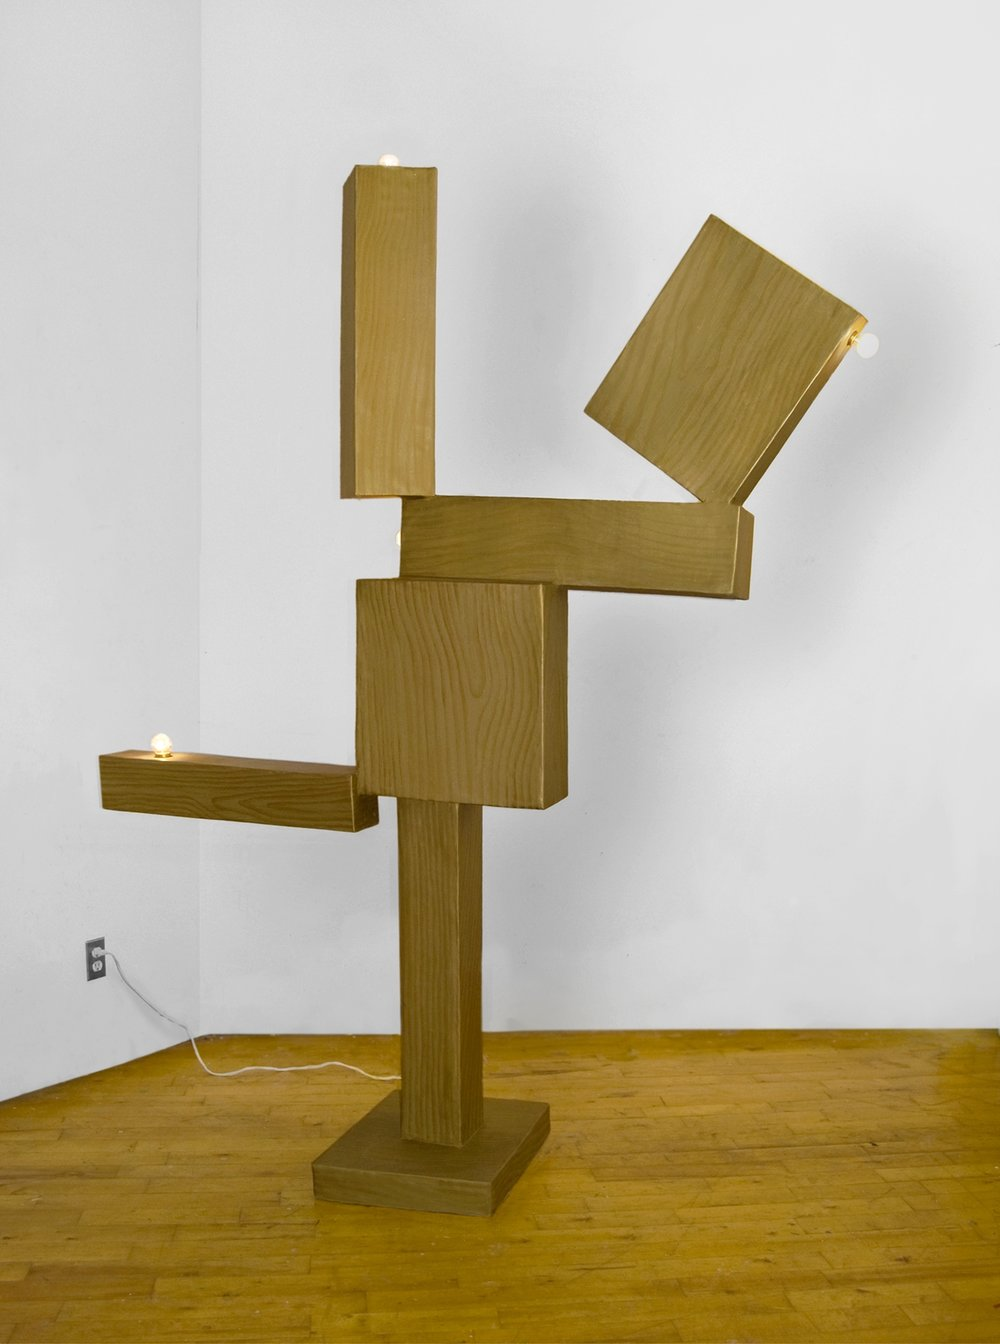 Goldrush (Cubi V), 2013, acyrlic, papier mache, cardboard, plaster, lights, wood, 89 x 47 x 22 inches